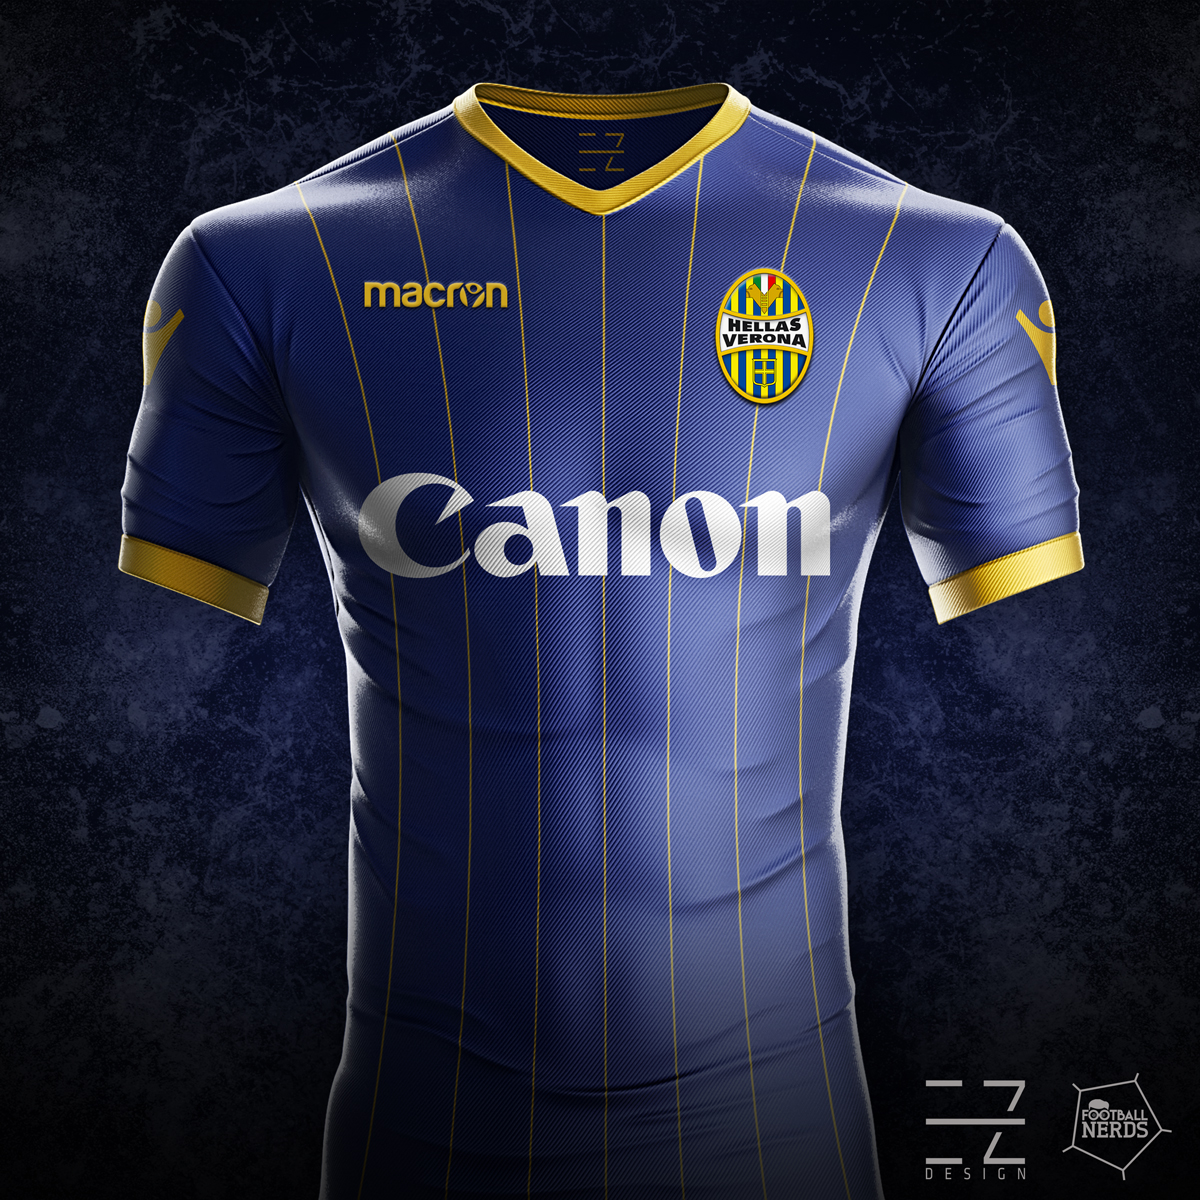 Hellas verona le maglie 2017 18 vs i concept di ez design for Uniform verona